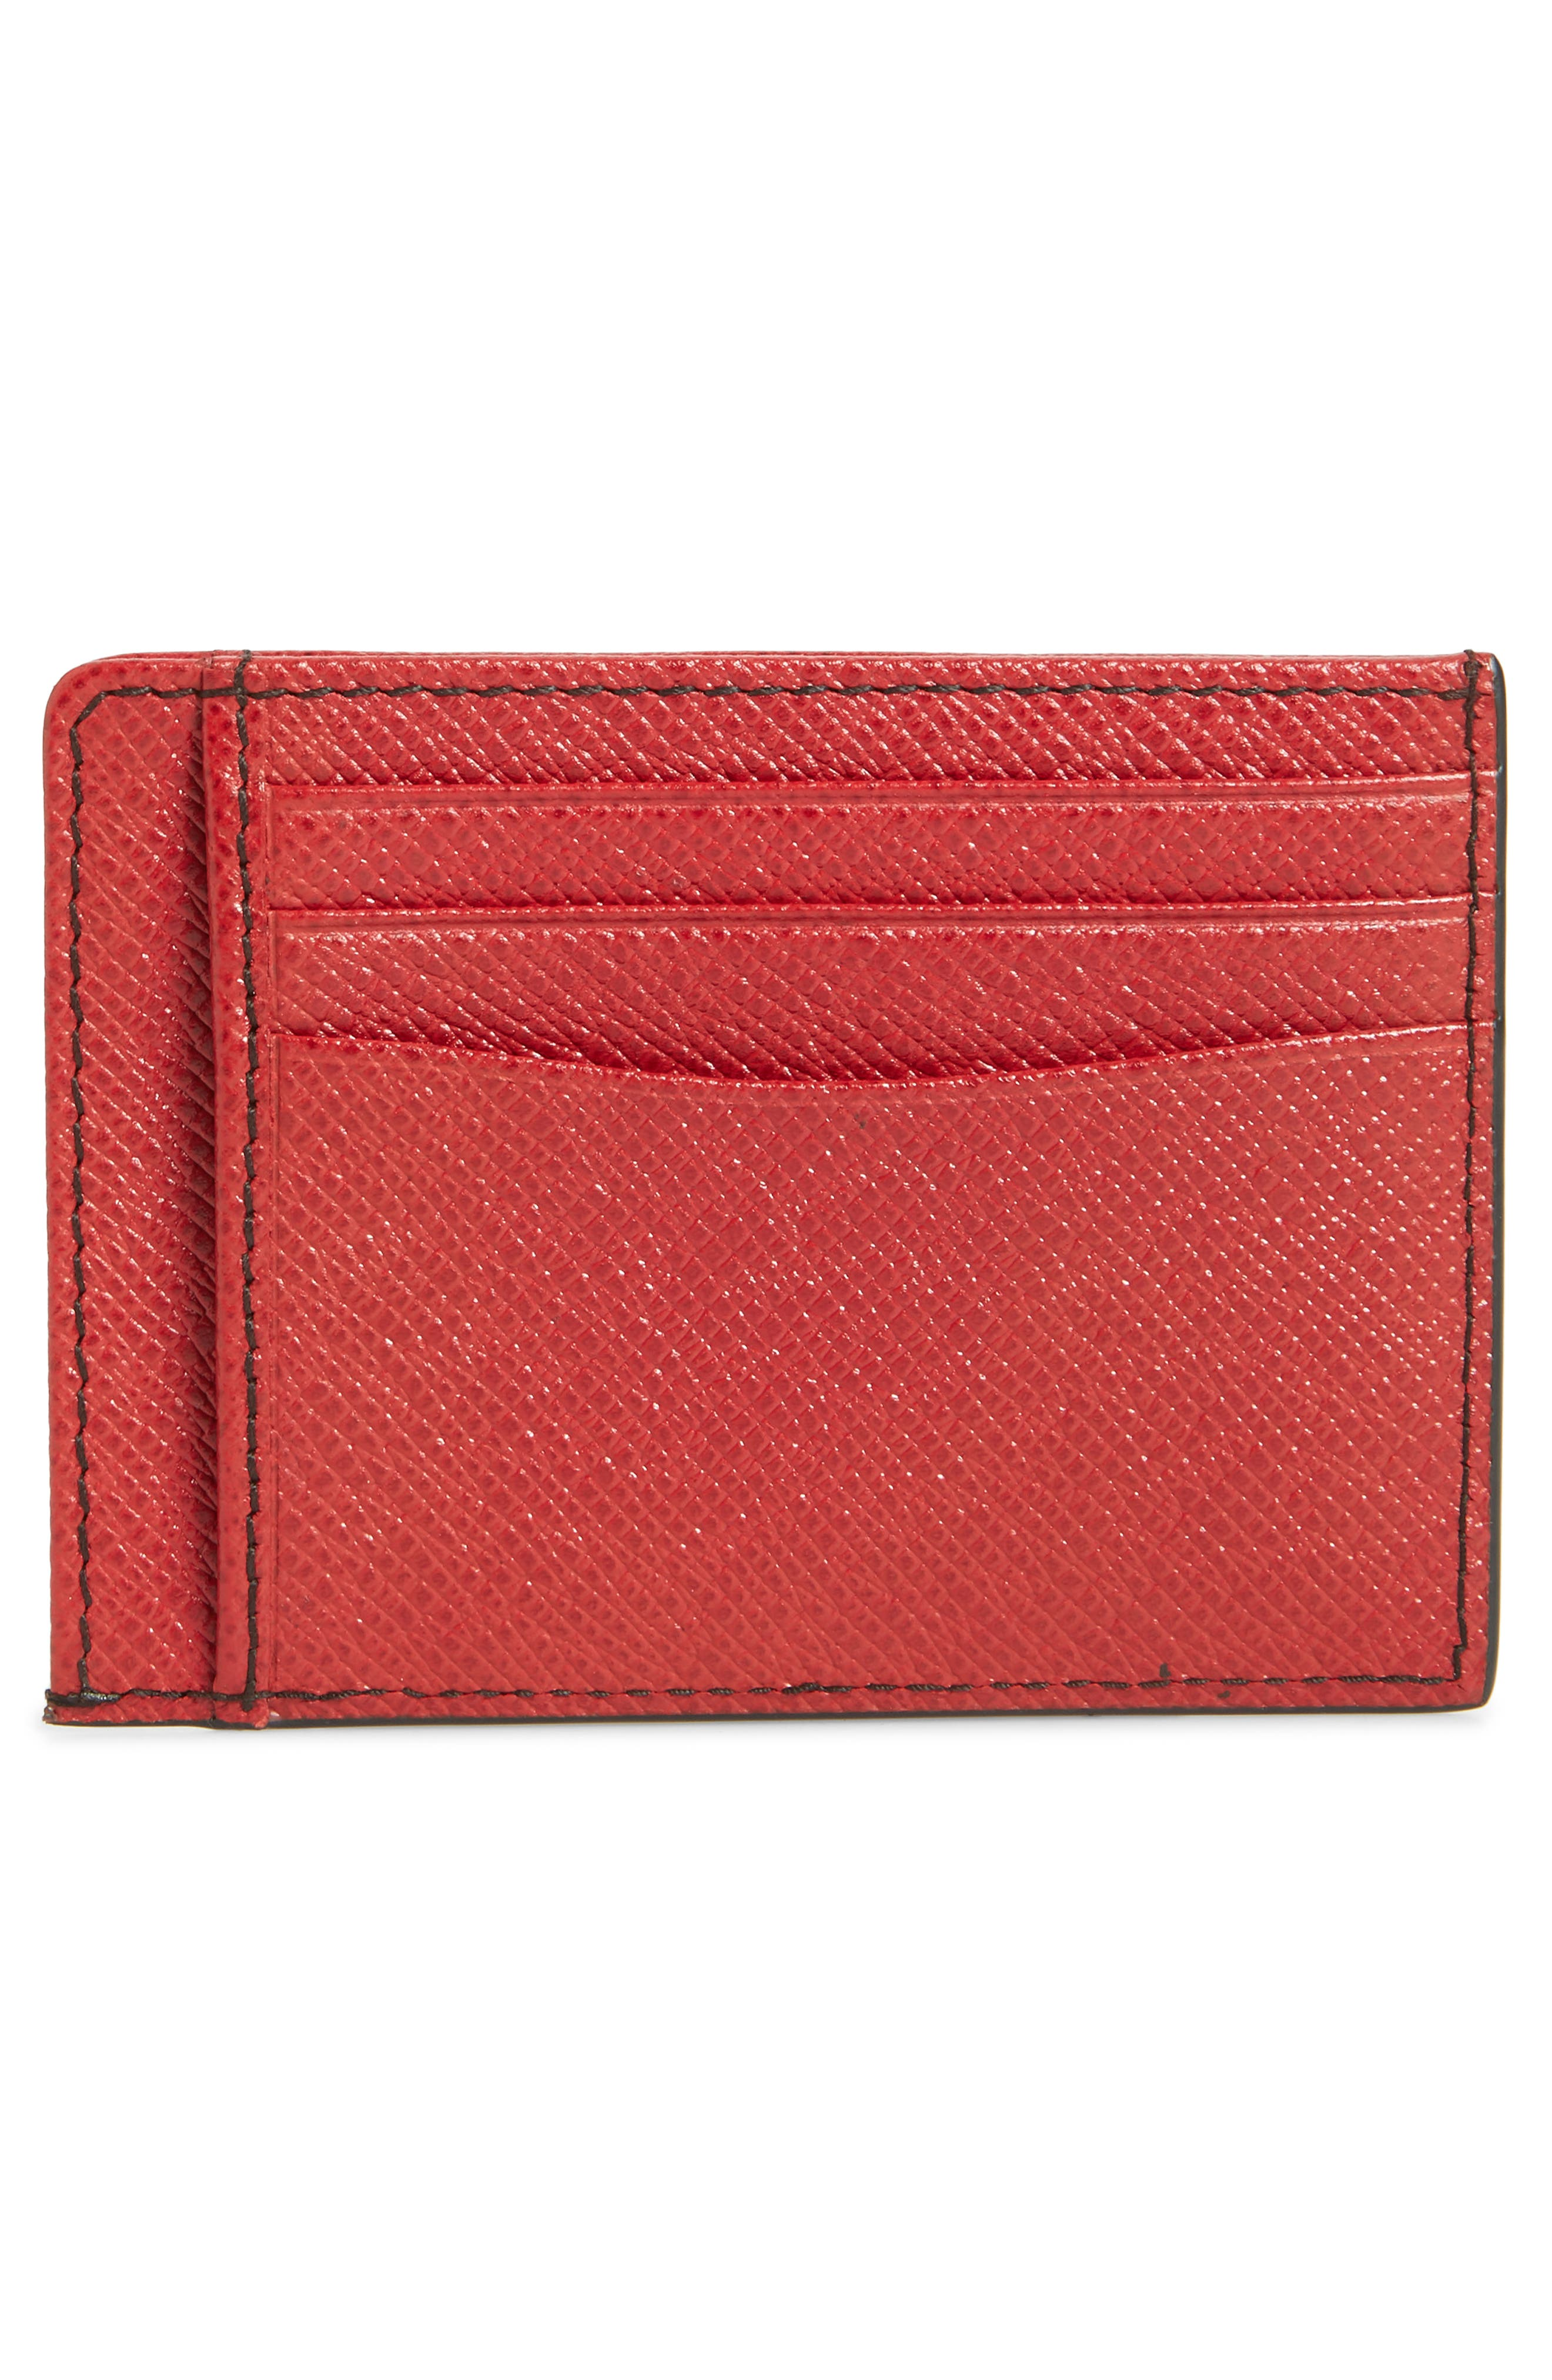 Embossed Leather Card Case,                             Alternate thumbnail 2, color,                             DARK RED